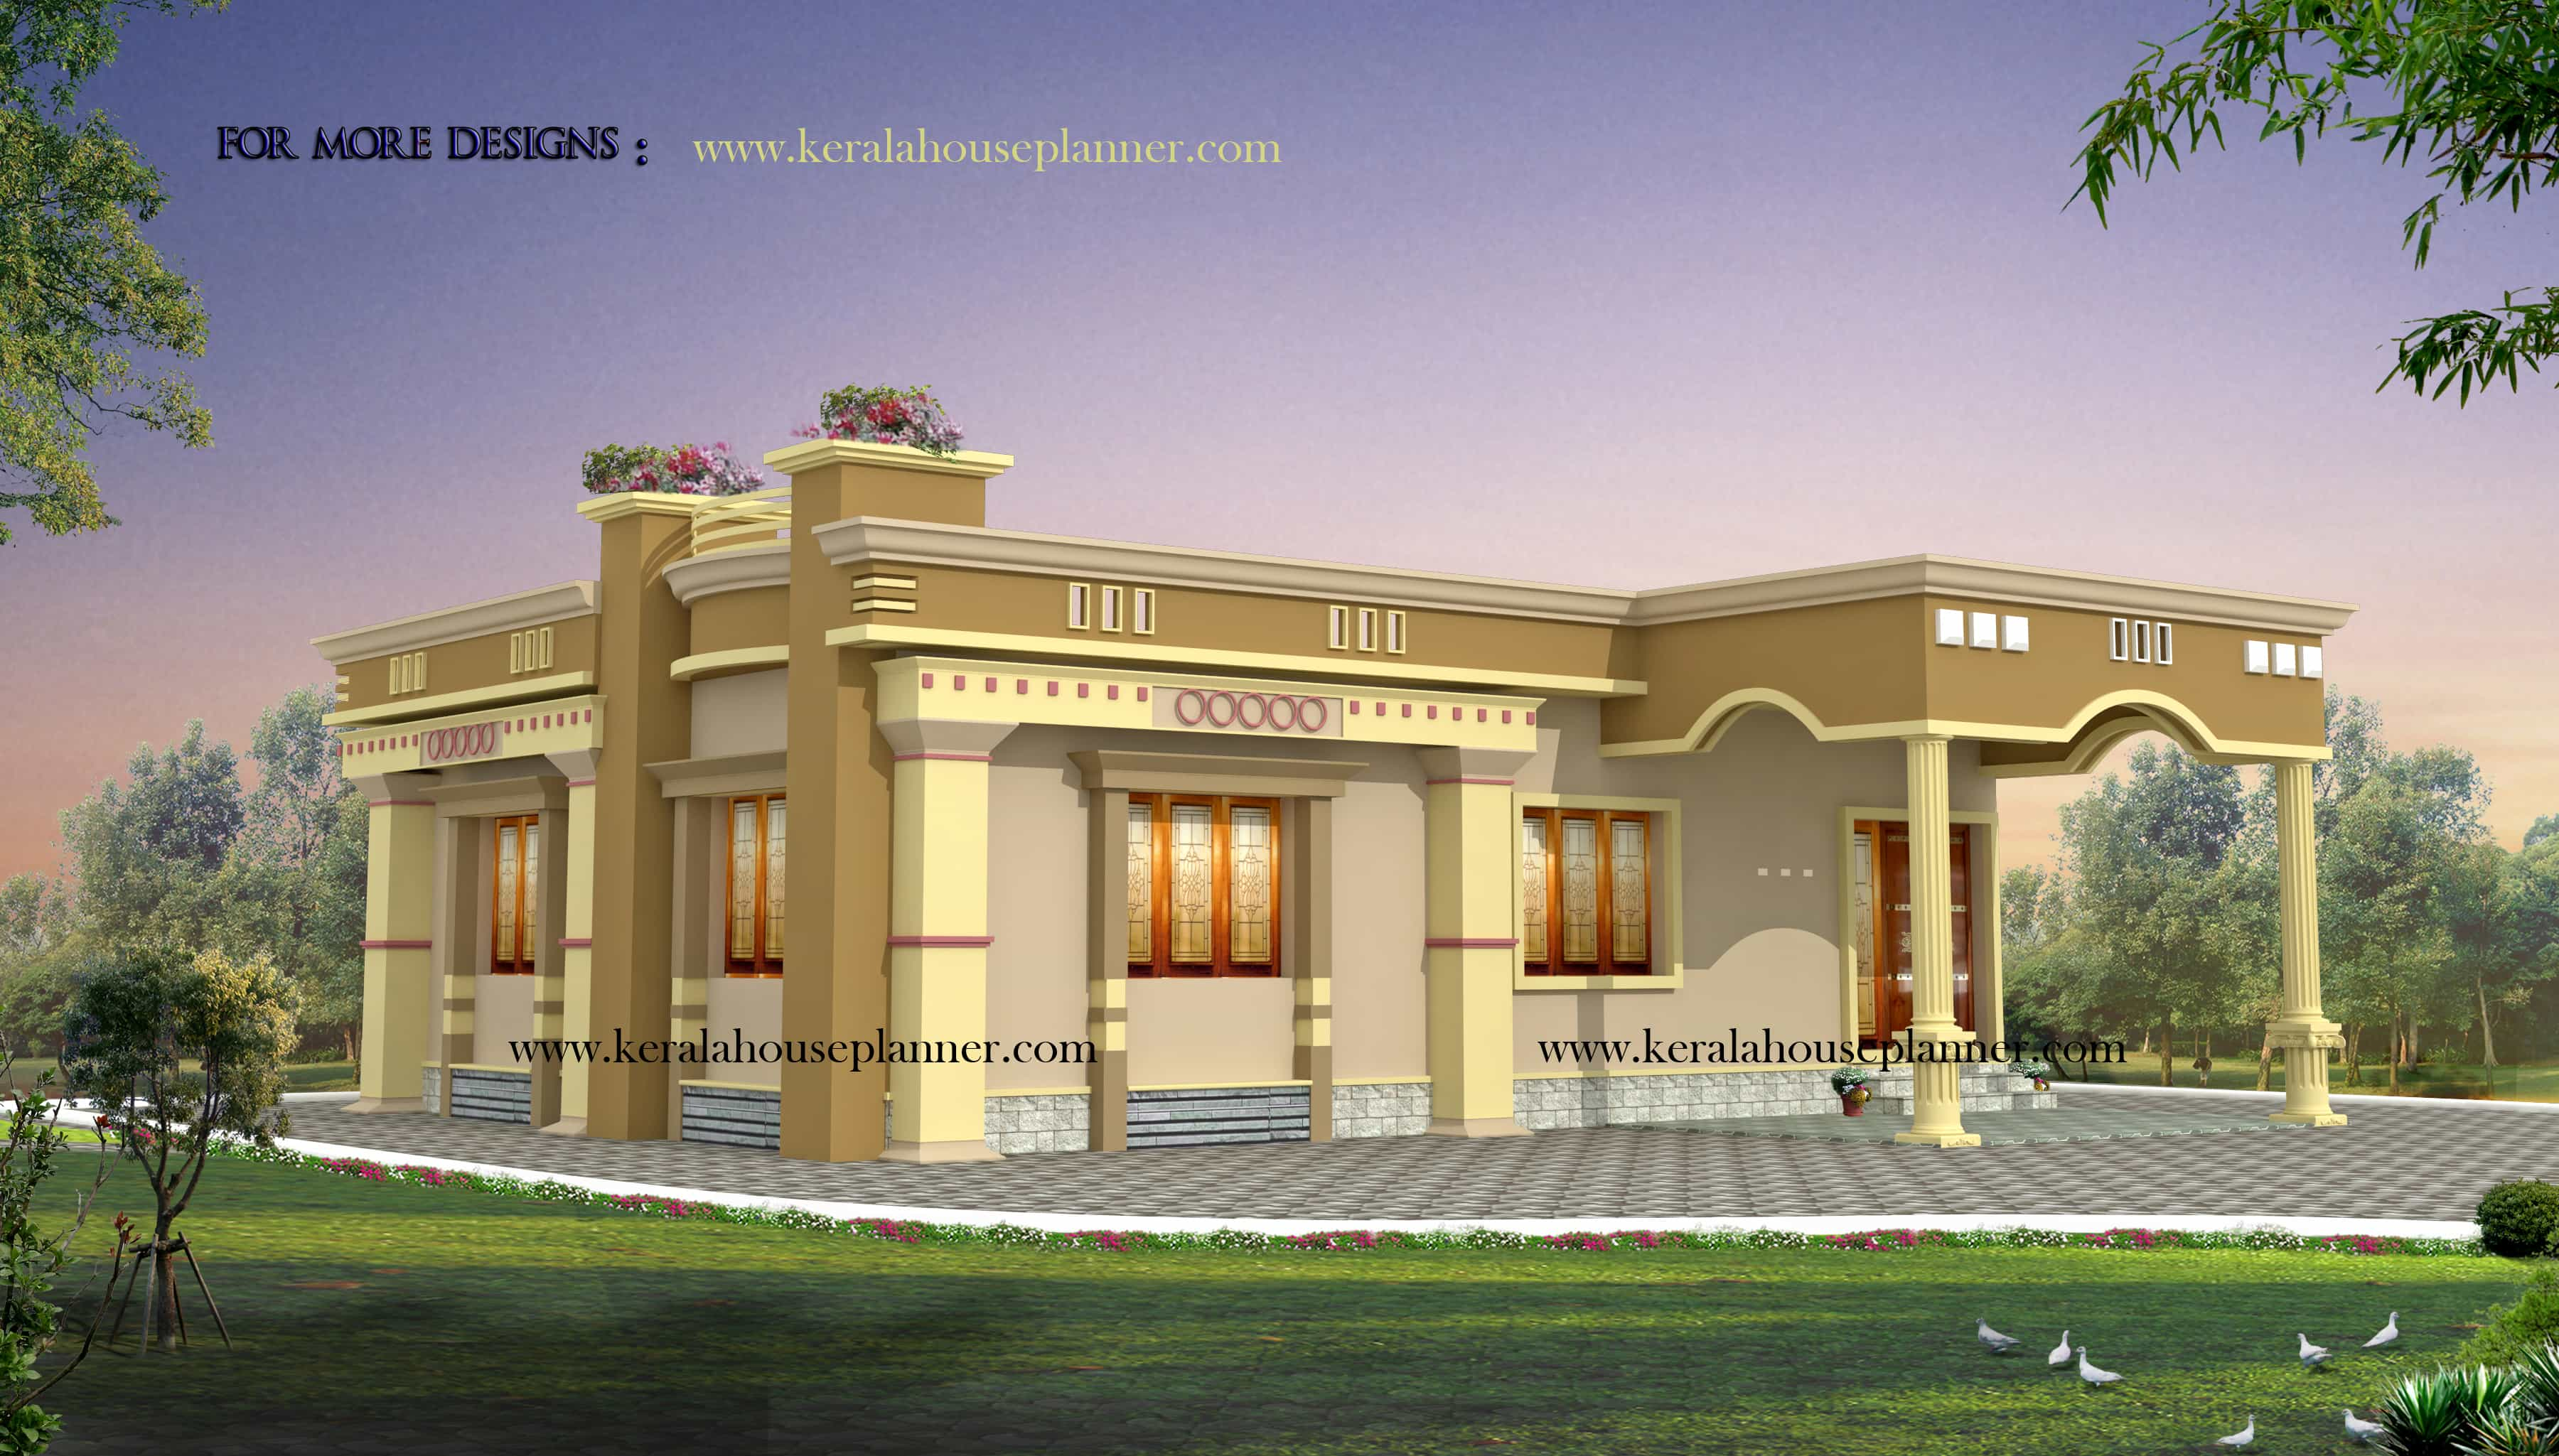 Kerala house plans 1200 sq ft with photos khp for Kerala style home